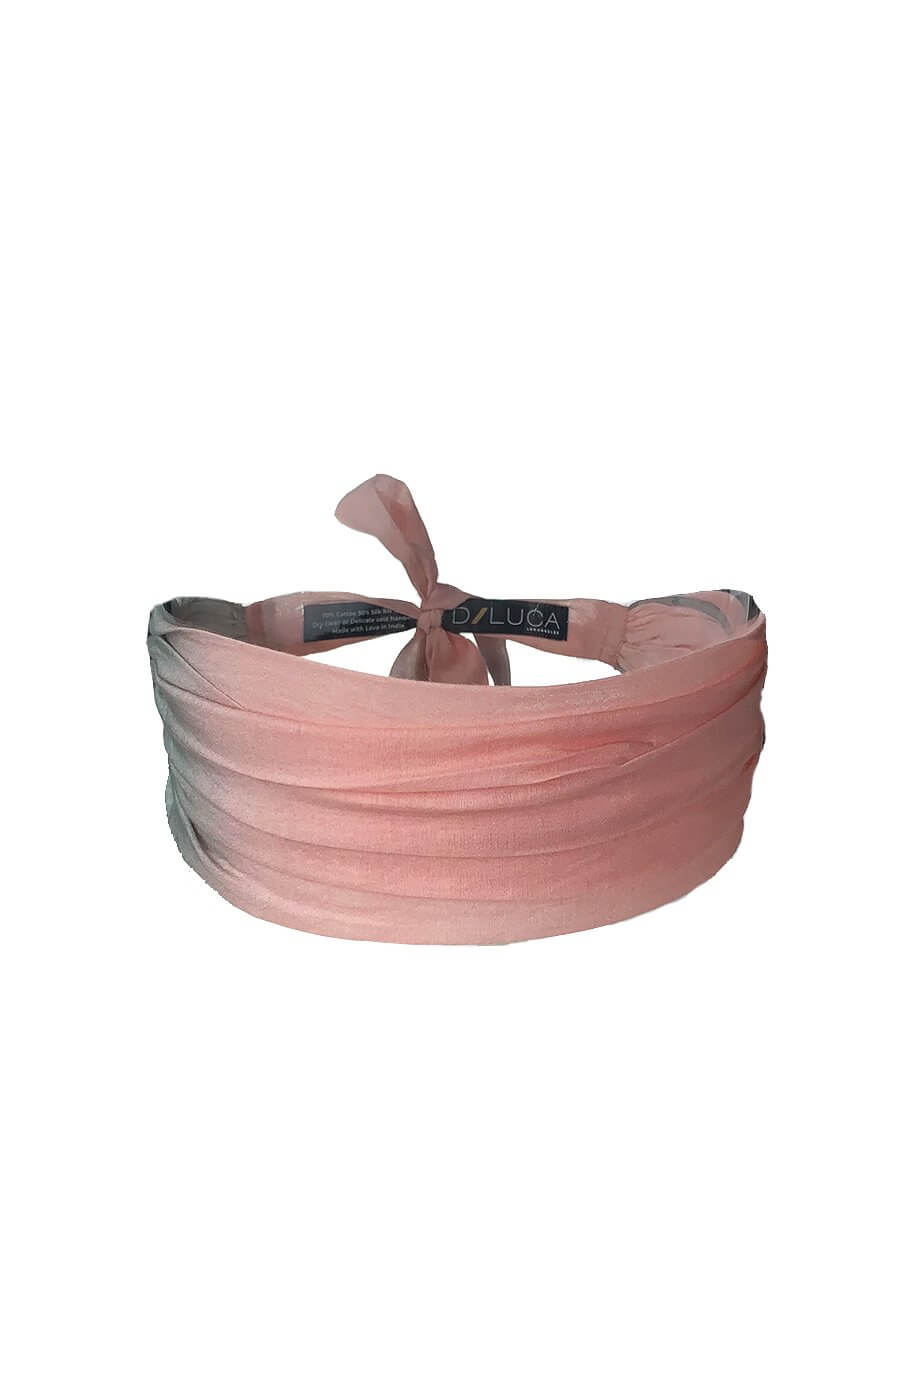 D/Luca Shades of blush -The Band -Silk Cotton Blend